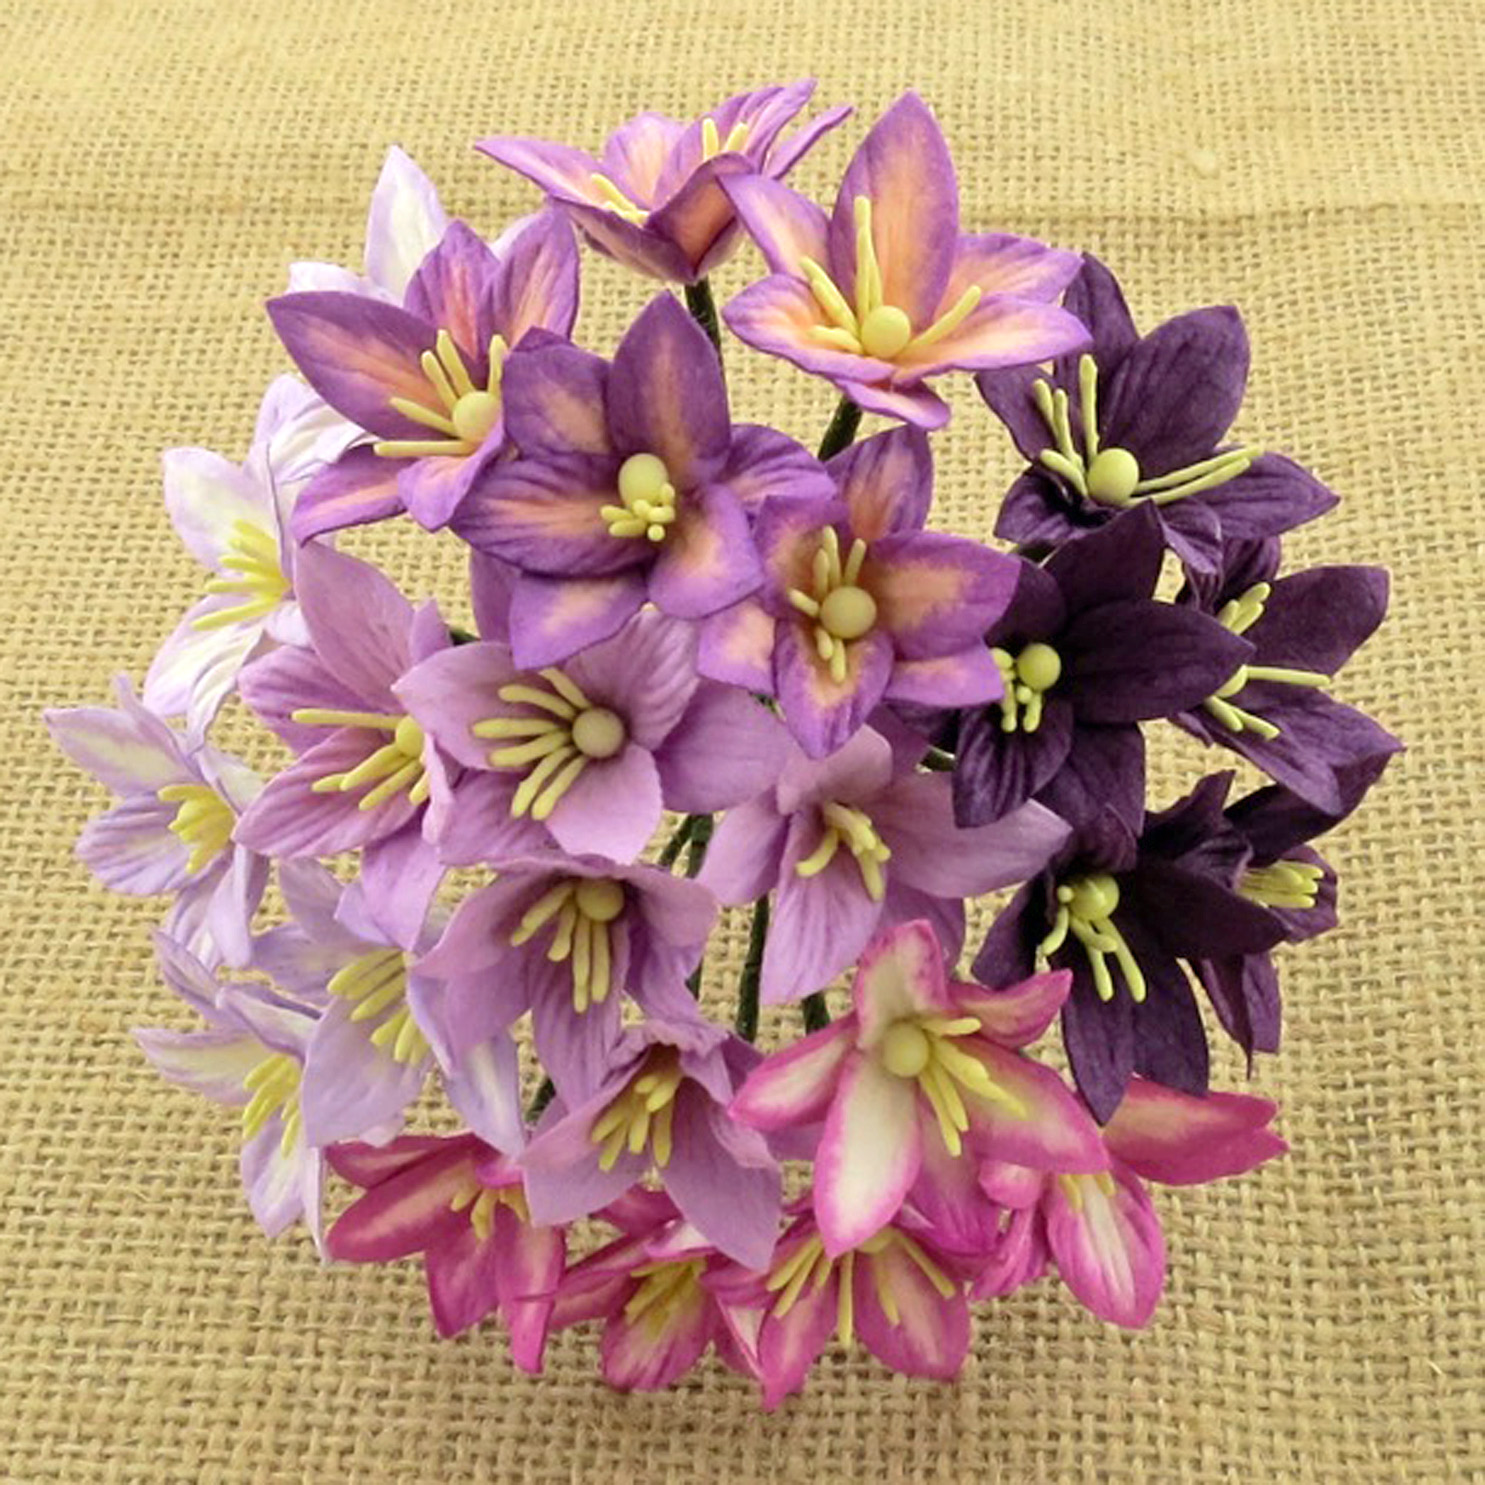 50 MIXED PURPLE/LILAC MULBERRY PAPER LILY FLOWERS - 5 COLOR